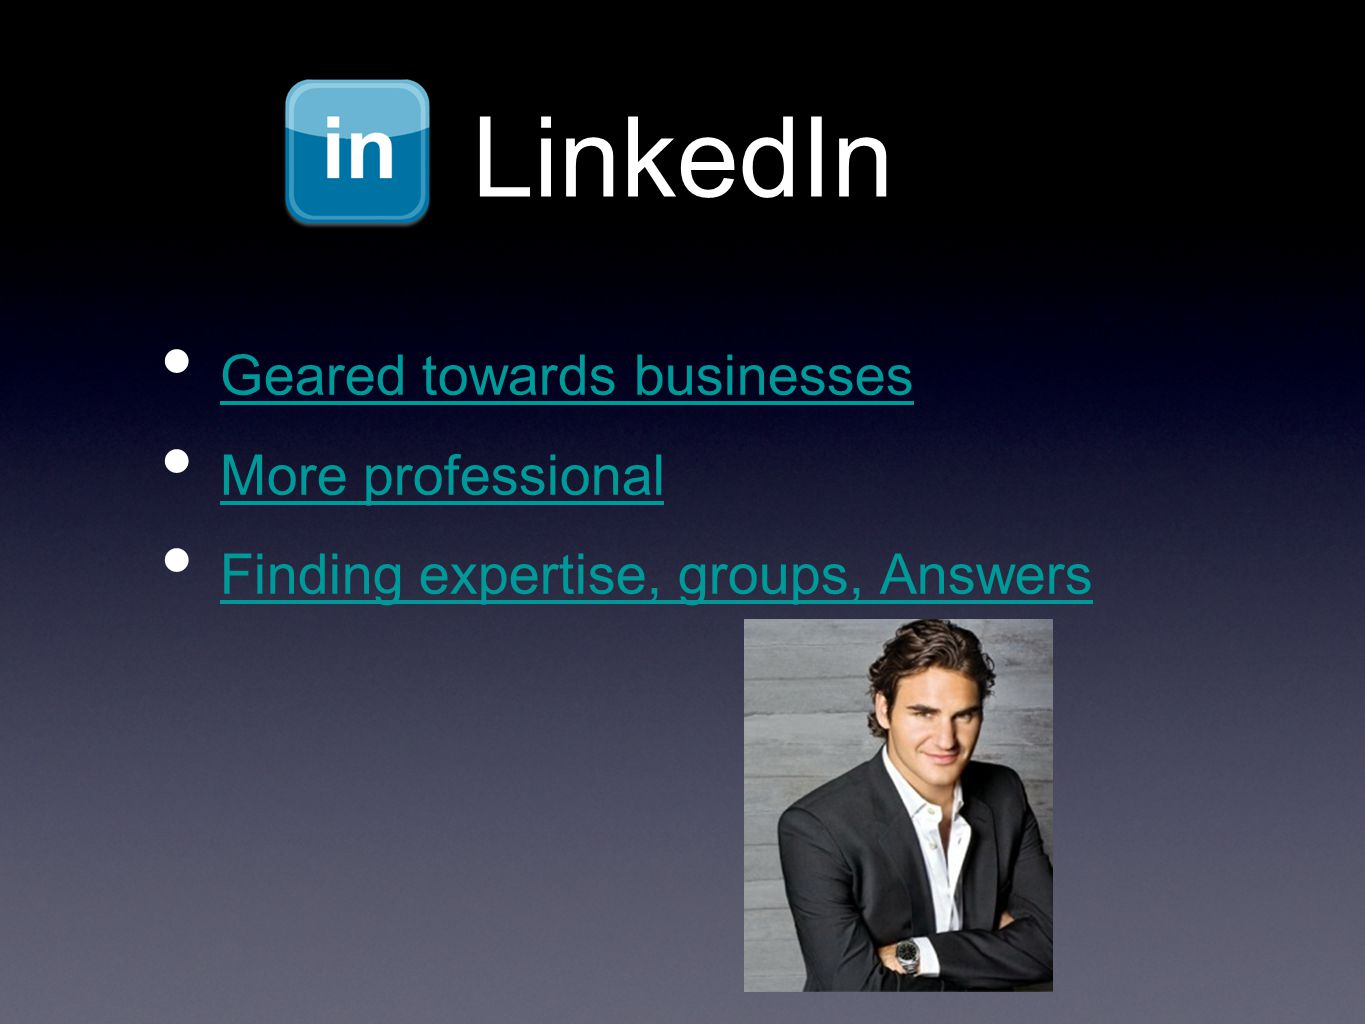 LinkedIn Geared towards businesses More professional Finding expertise, groups, Answers